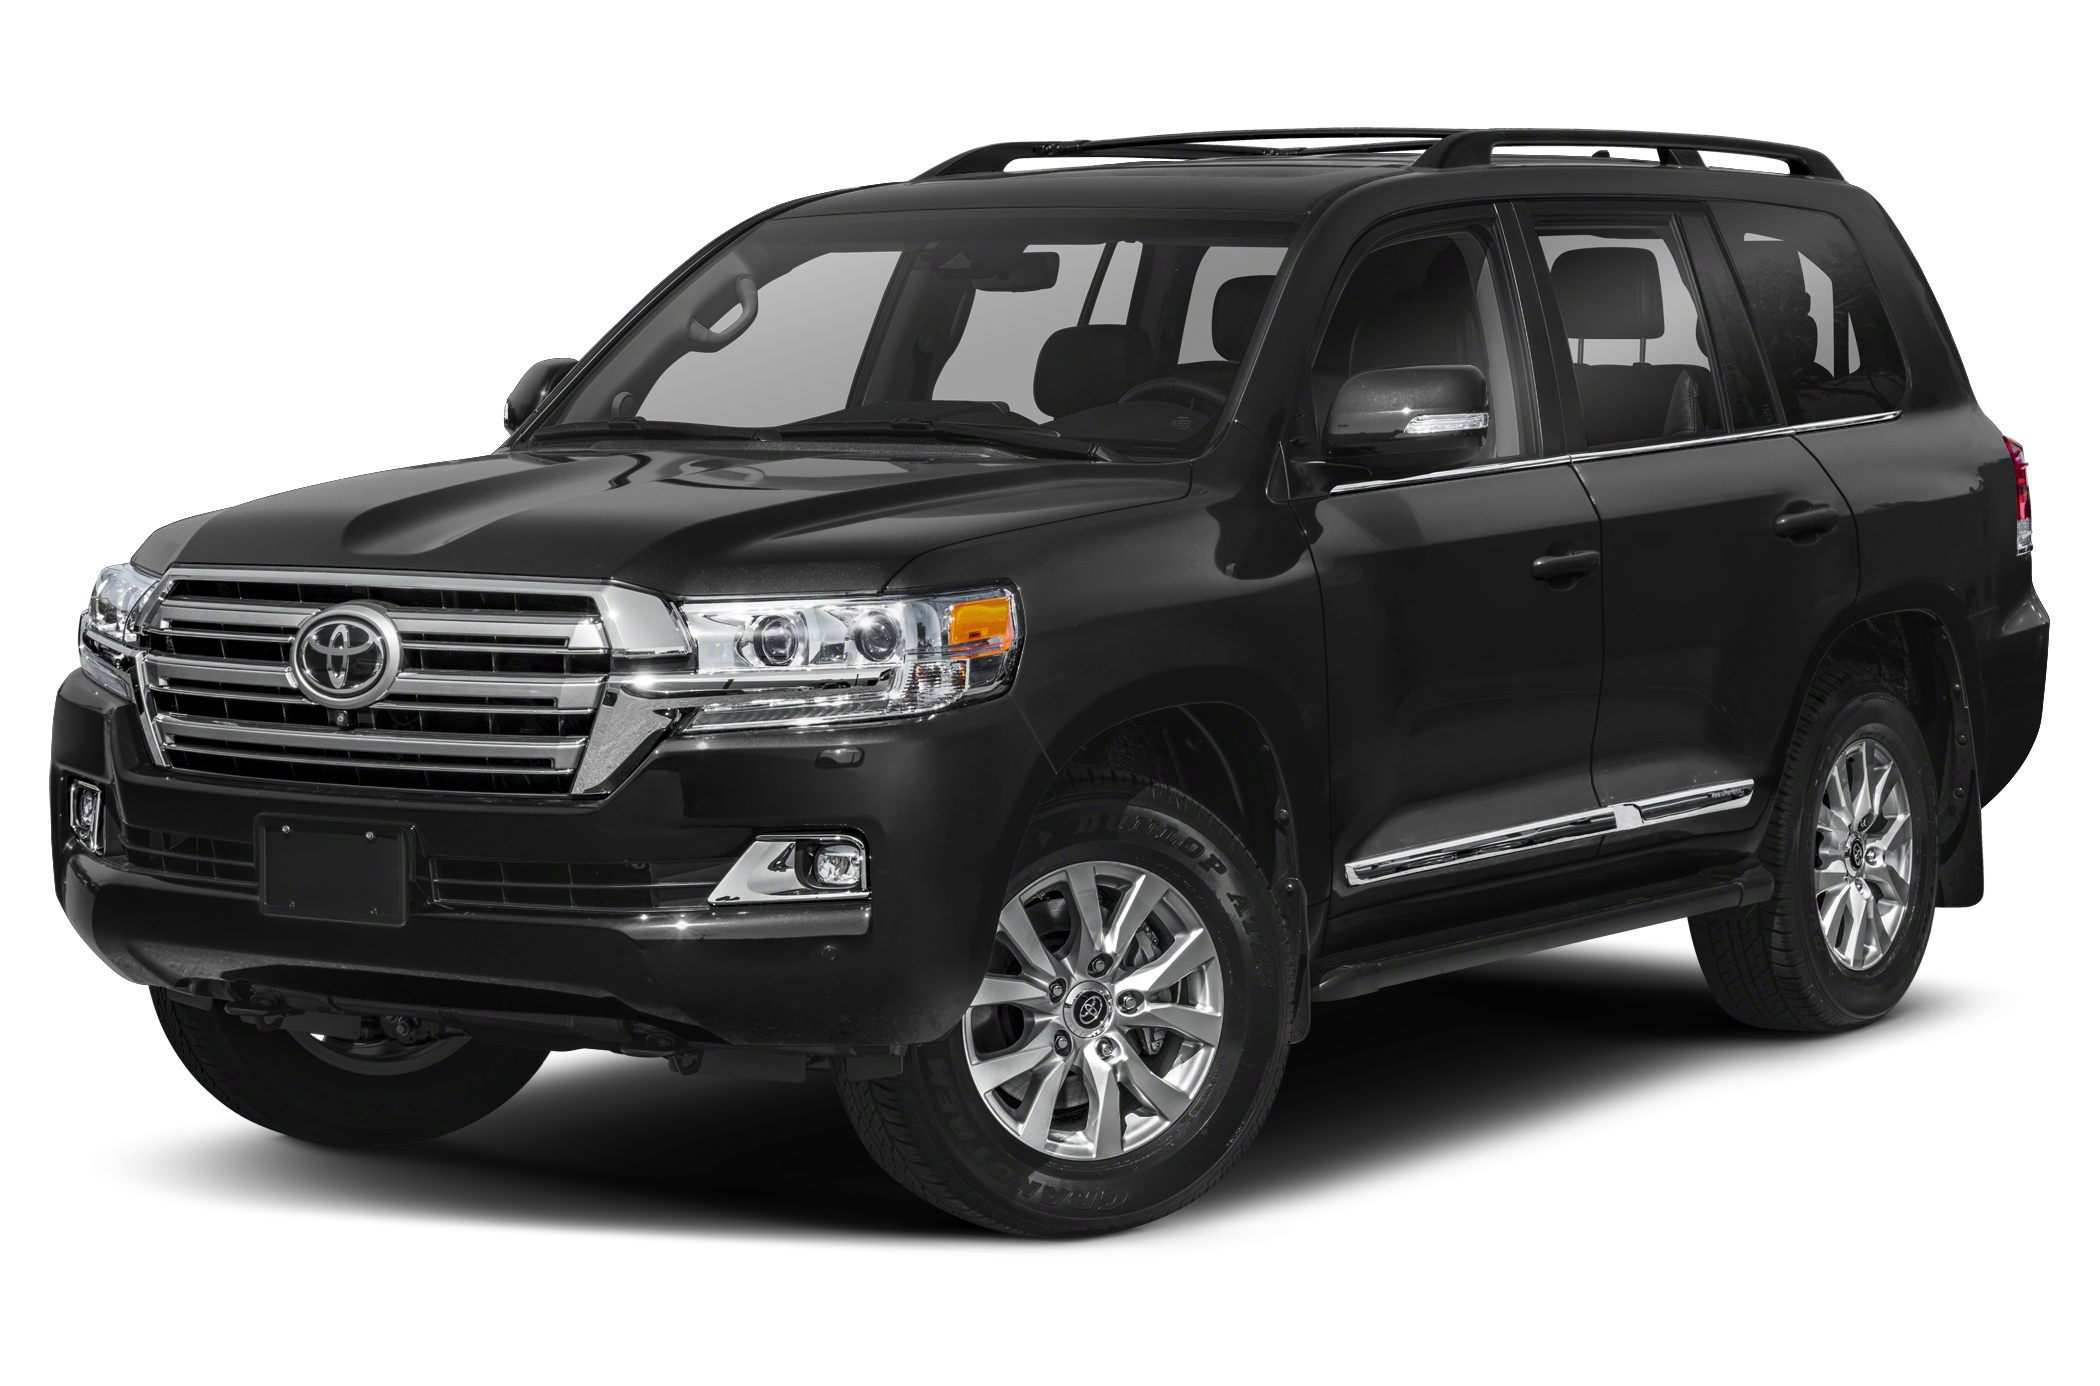 68 Great Toyota Land Cruiser V8 2019 Performance and New Engine for Toyota Land Cruiser V8 2019